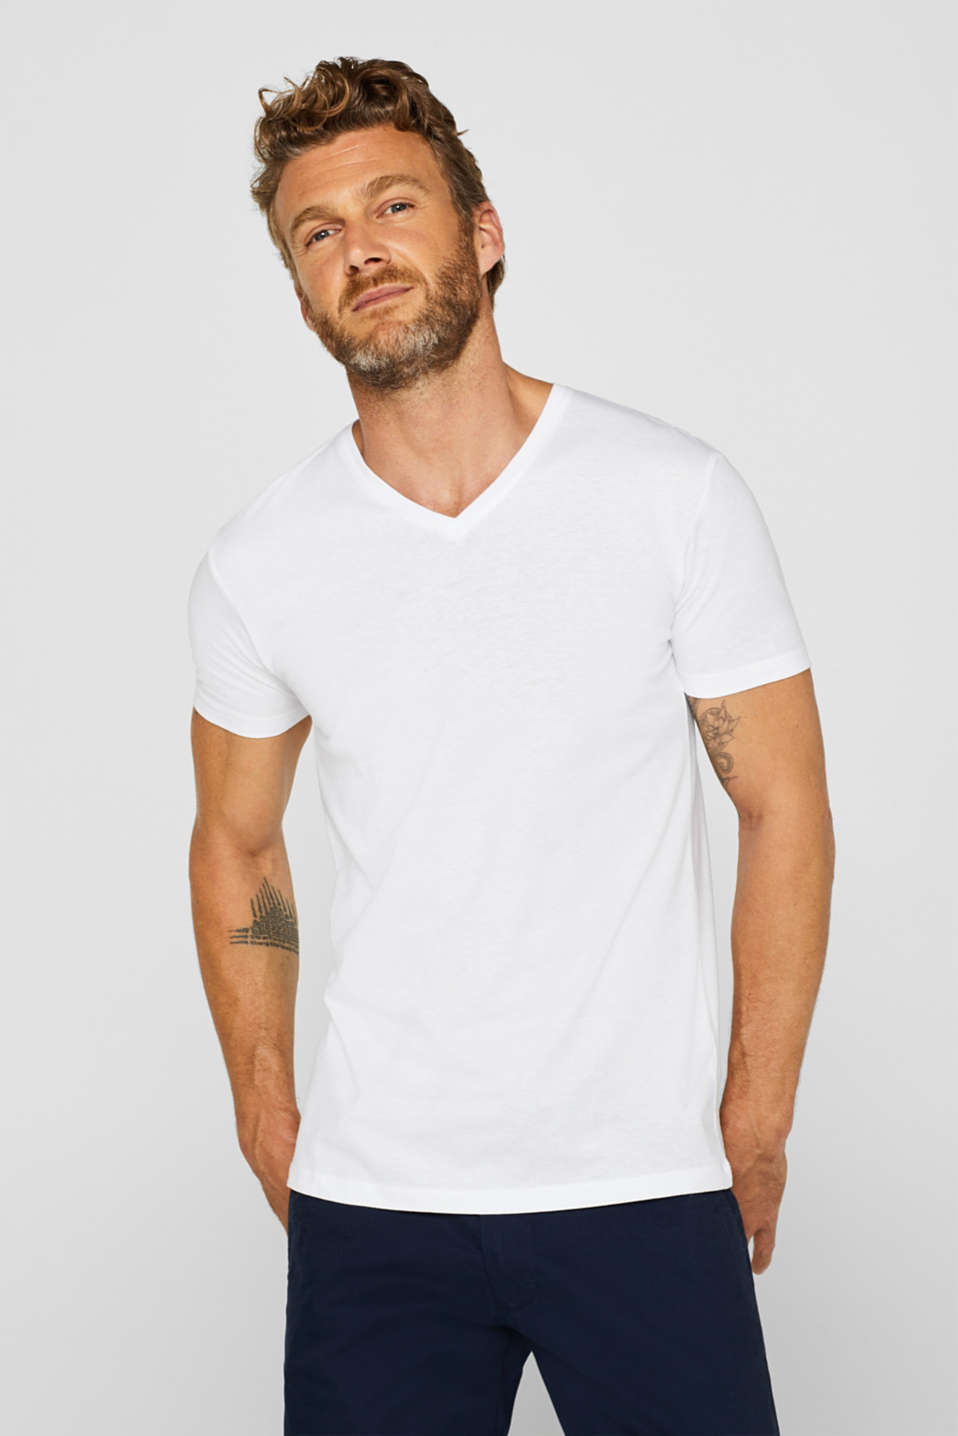 Esprit - Set van 2 jersey shirts met organic cotton